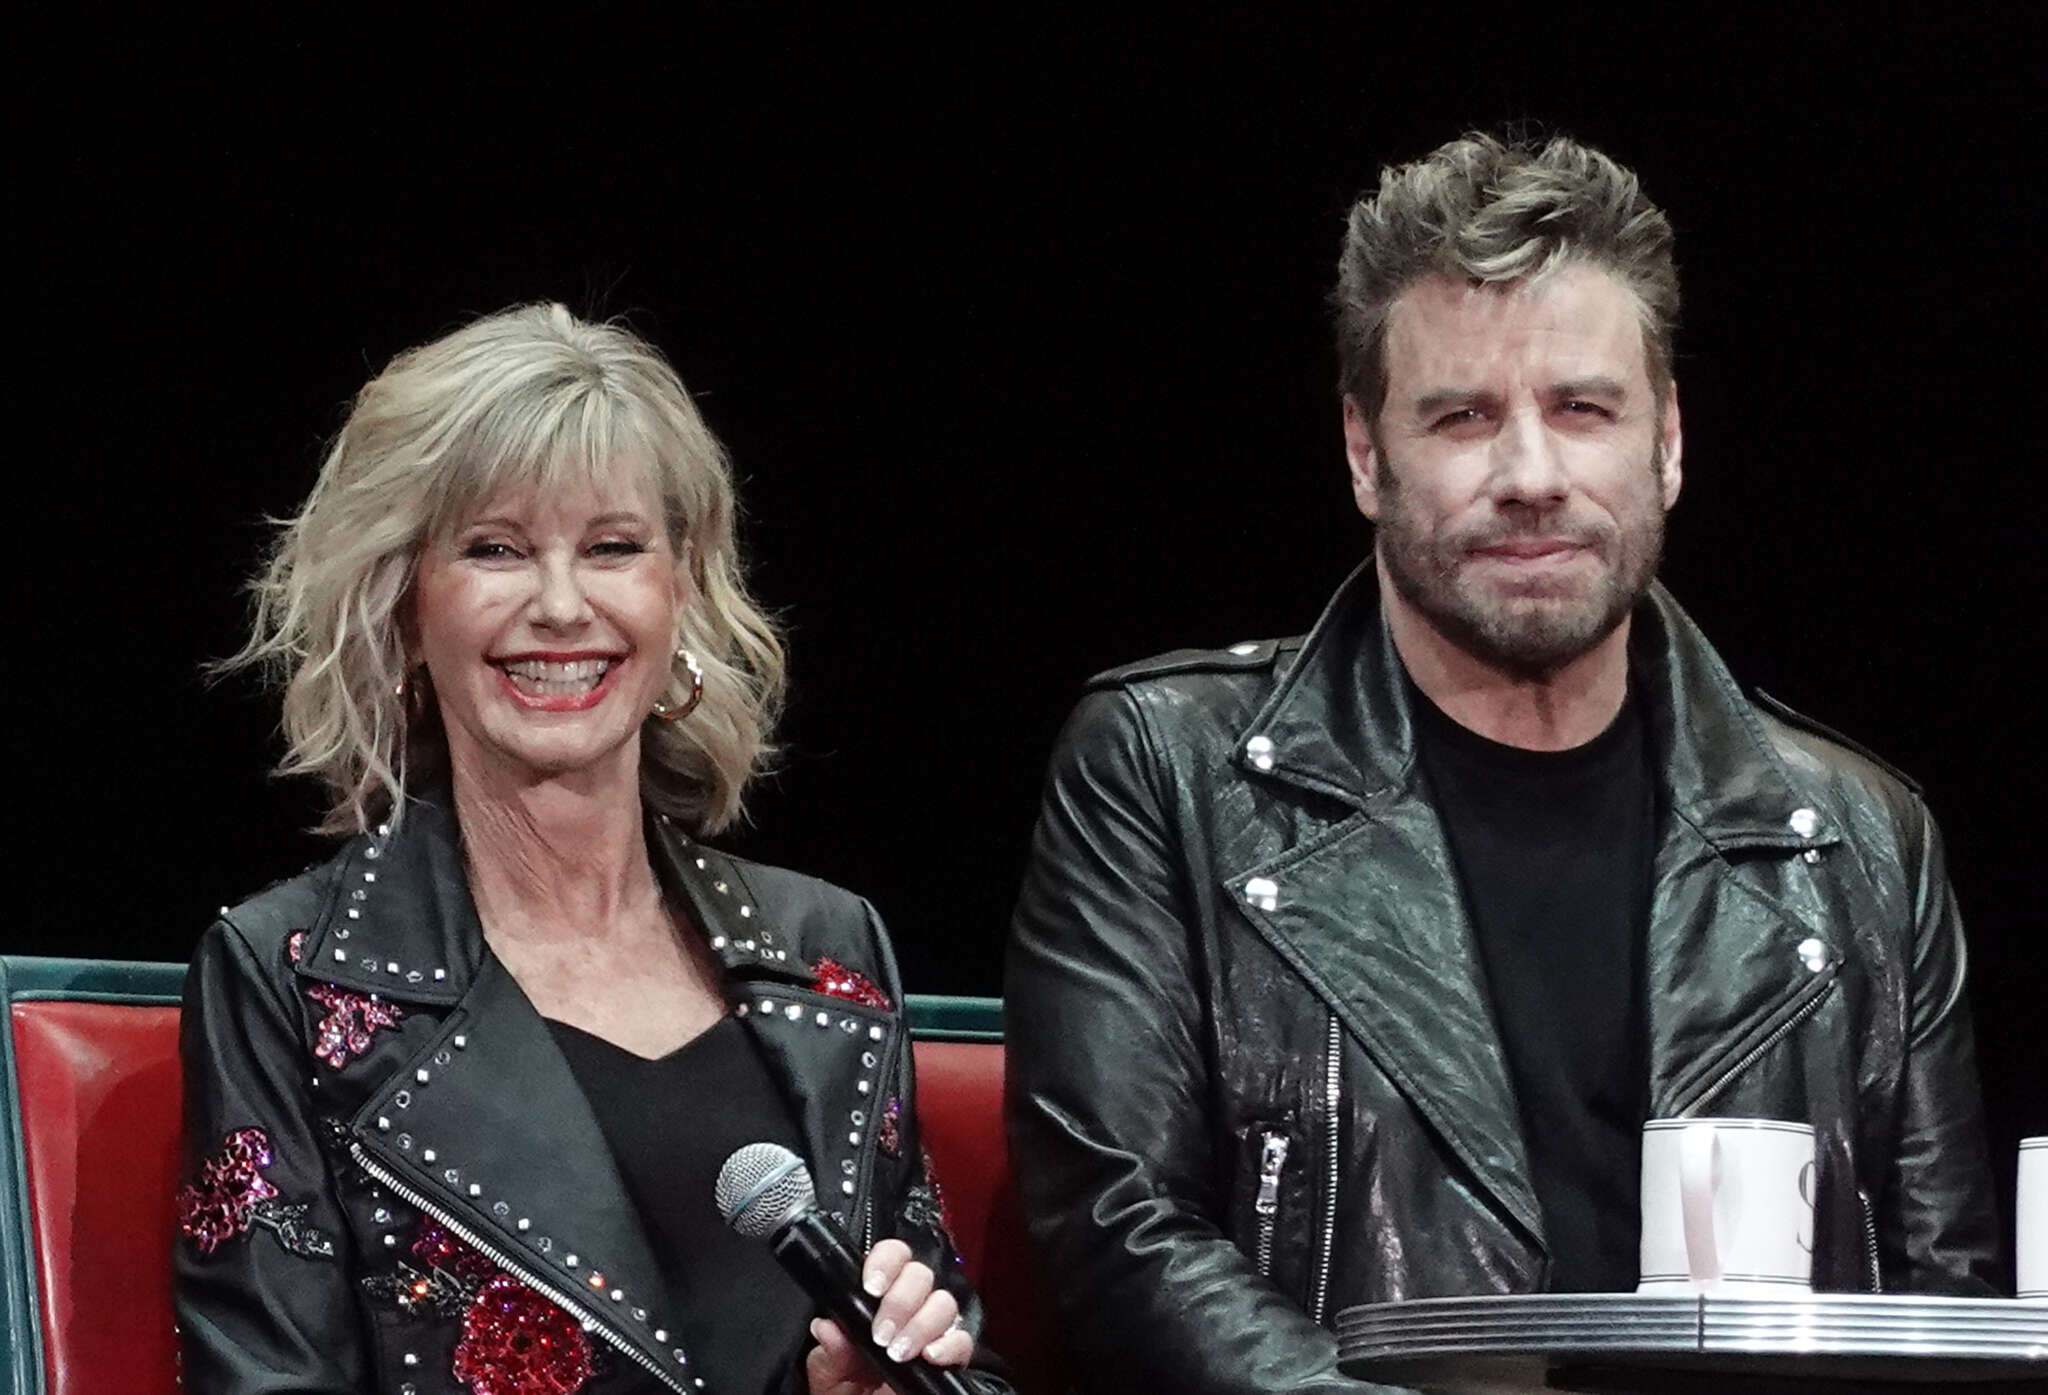 olivia-newton-john-raves-about-her-longtime-friendship-with-john-travolta-and-teases-music-collab